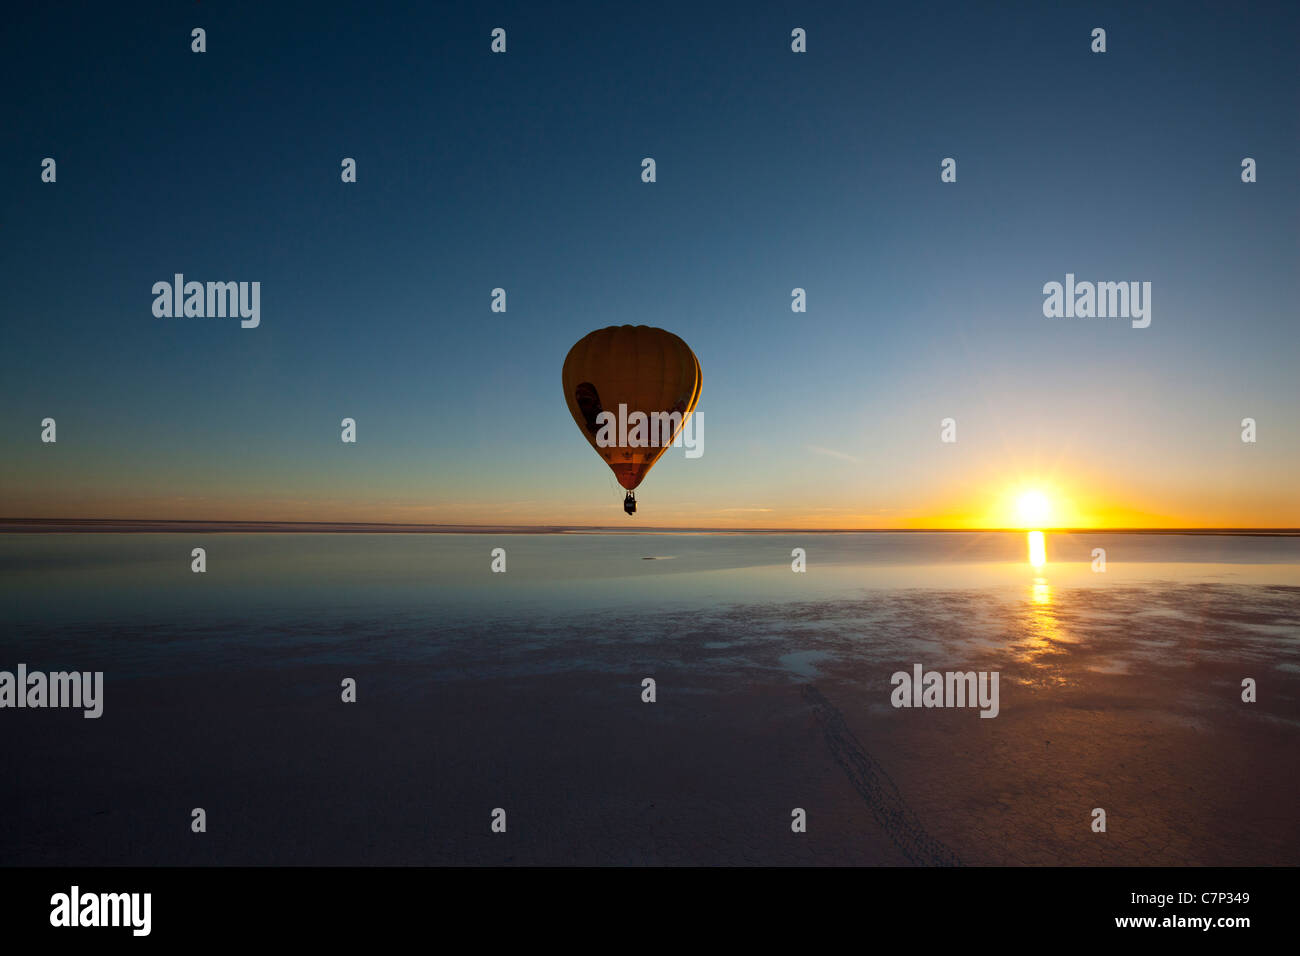 Hot air balloon flying low over Lake Eyre South, Australia - Stock Image